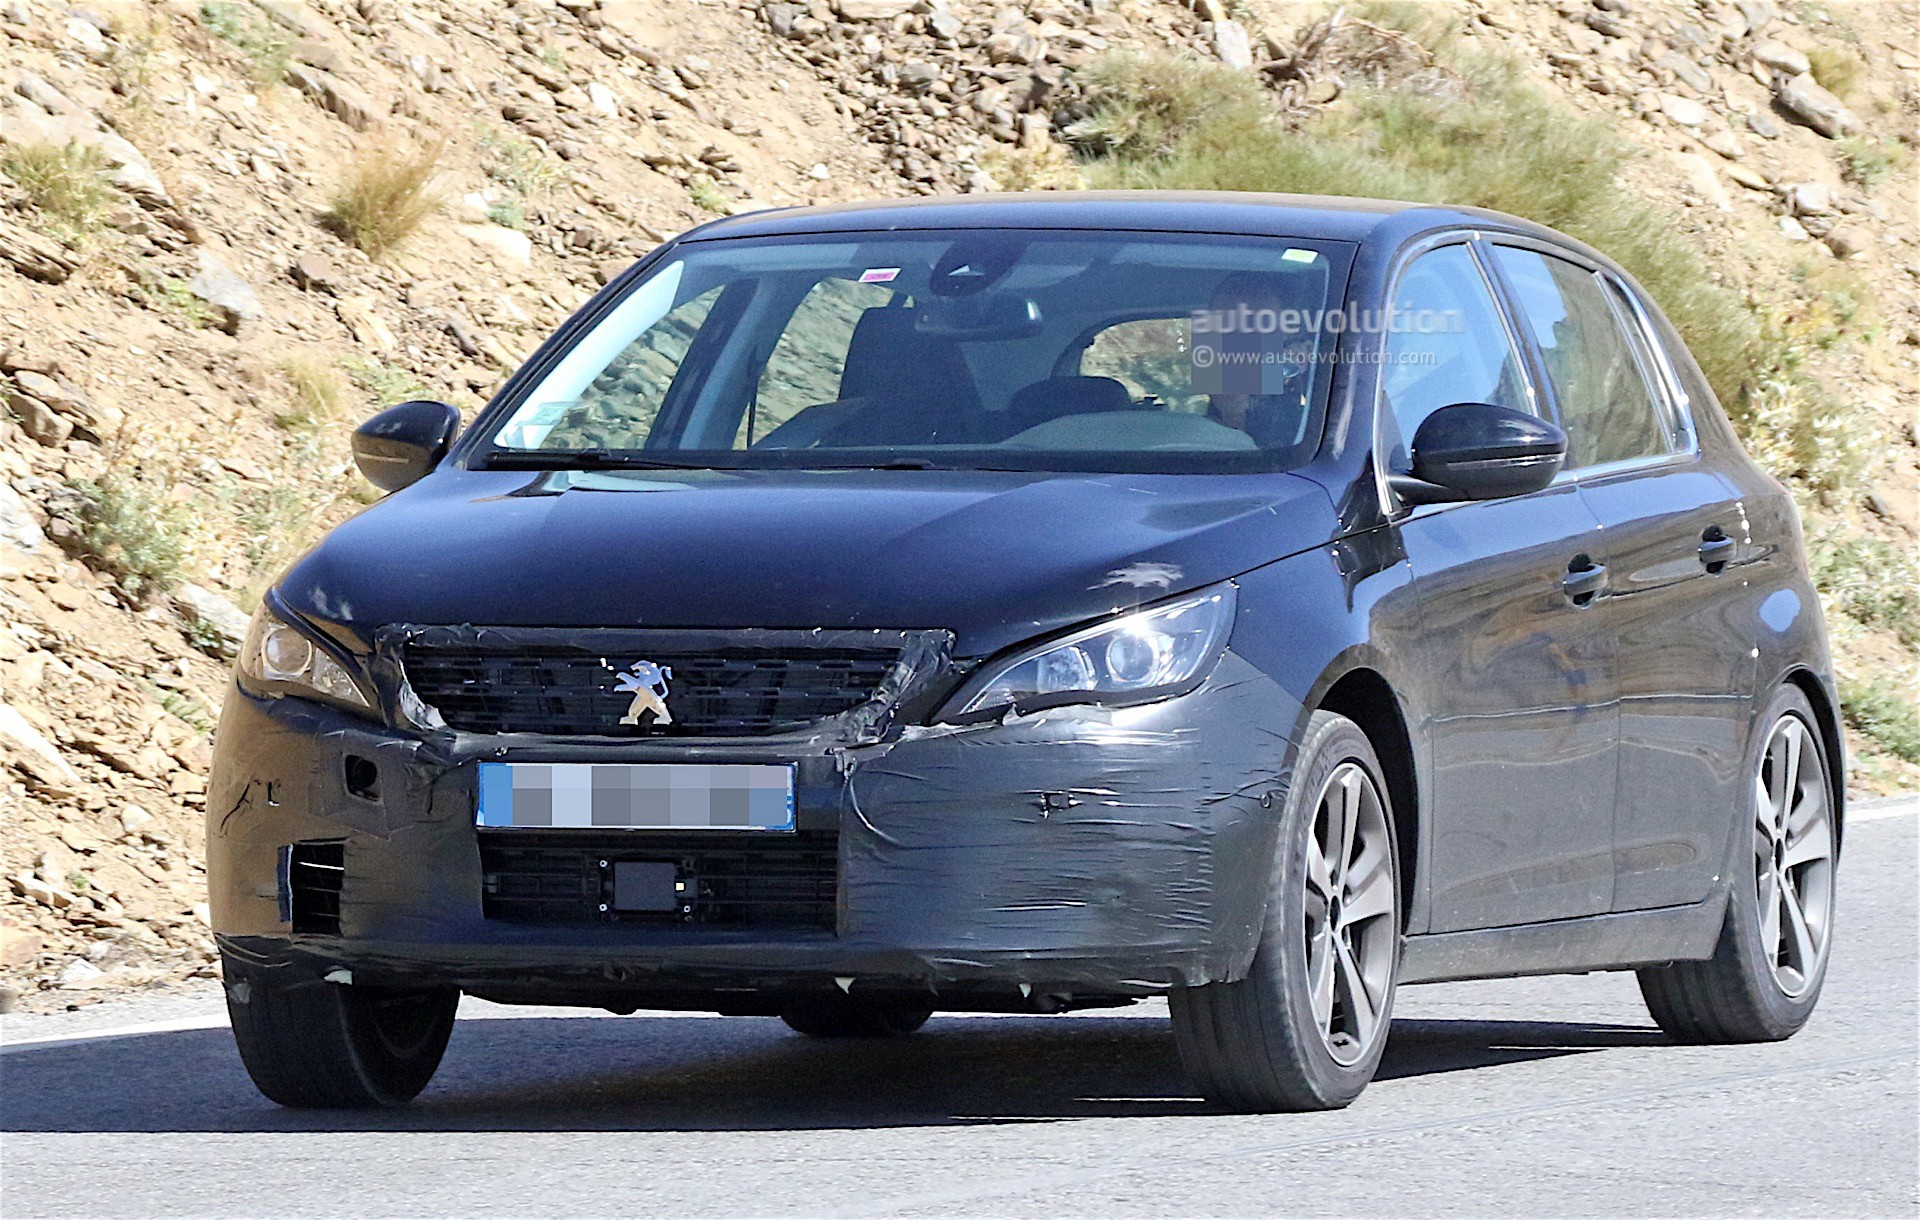 peugeot 308 facelift spied with little camouflage expect it in 2017 autoevolution. Black Bedroom Furniture Sets. Home Design Ideas